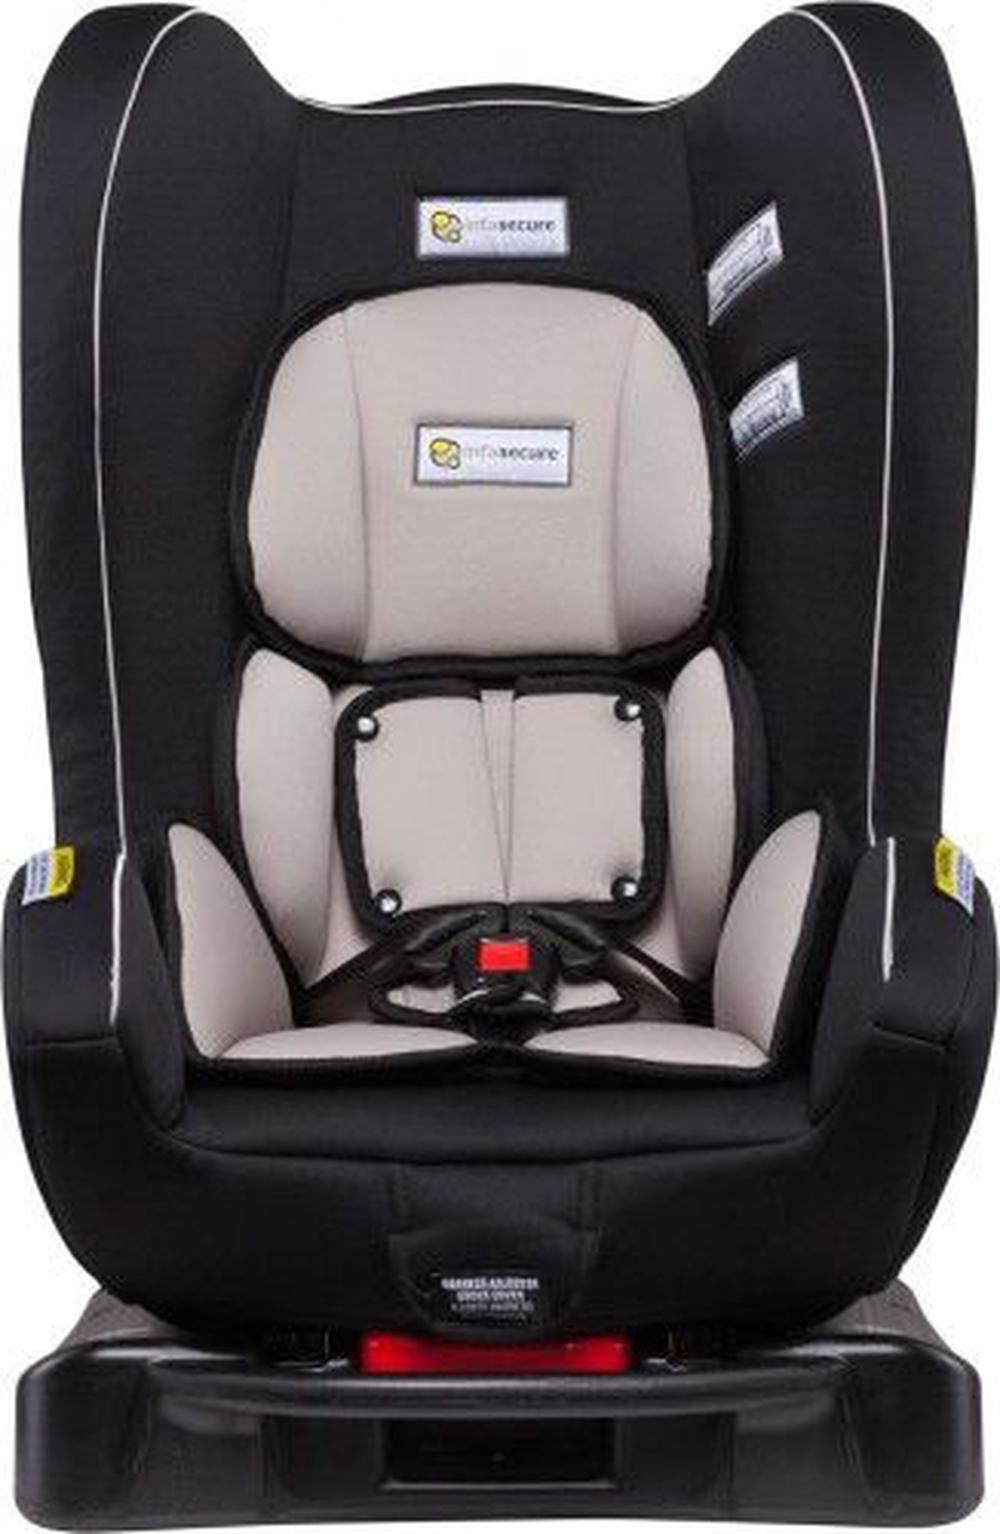 InfaSecure Cosi Compact Convertible Car Seat